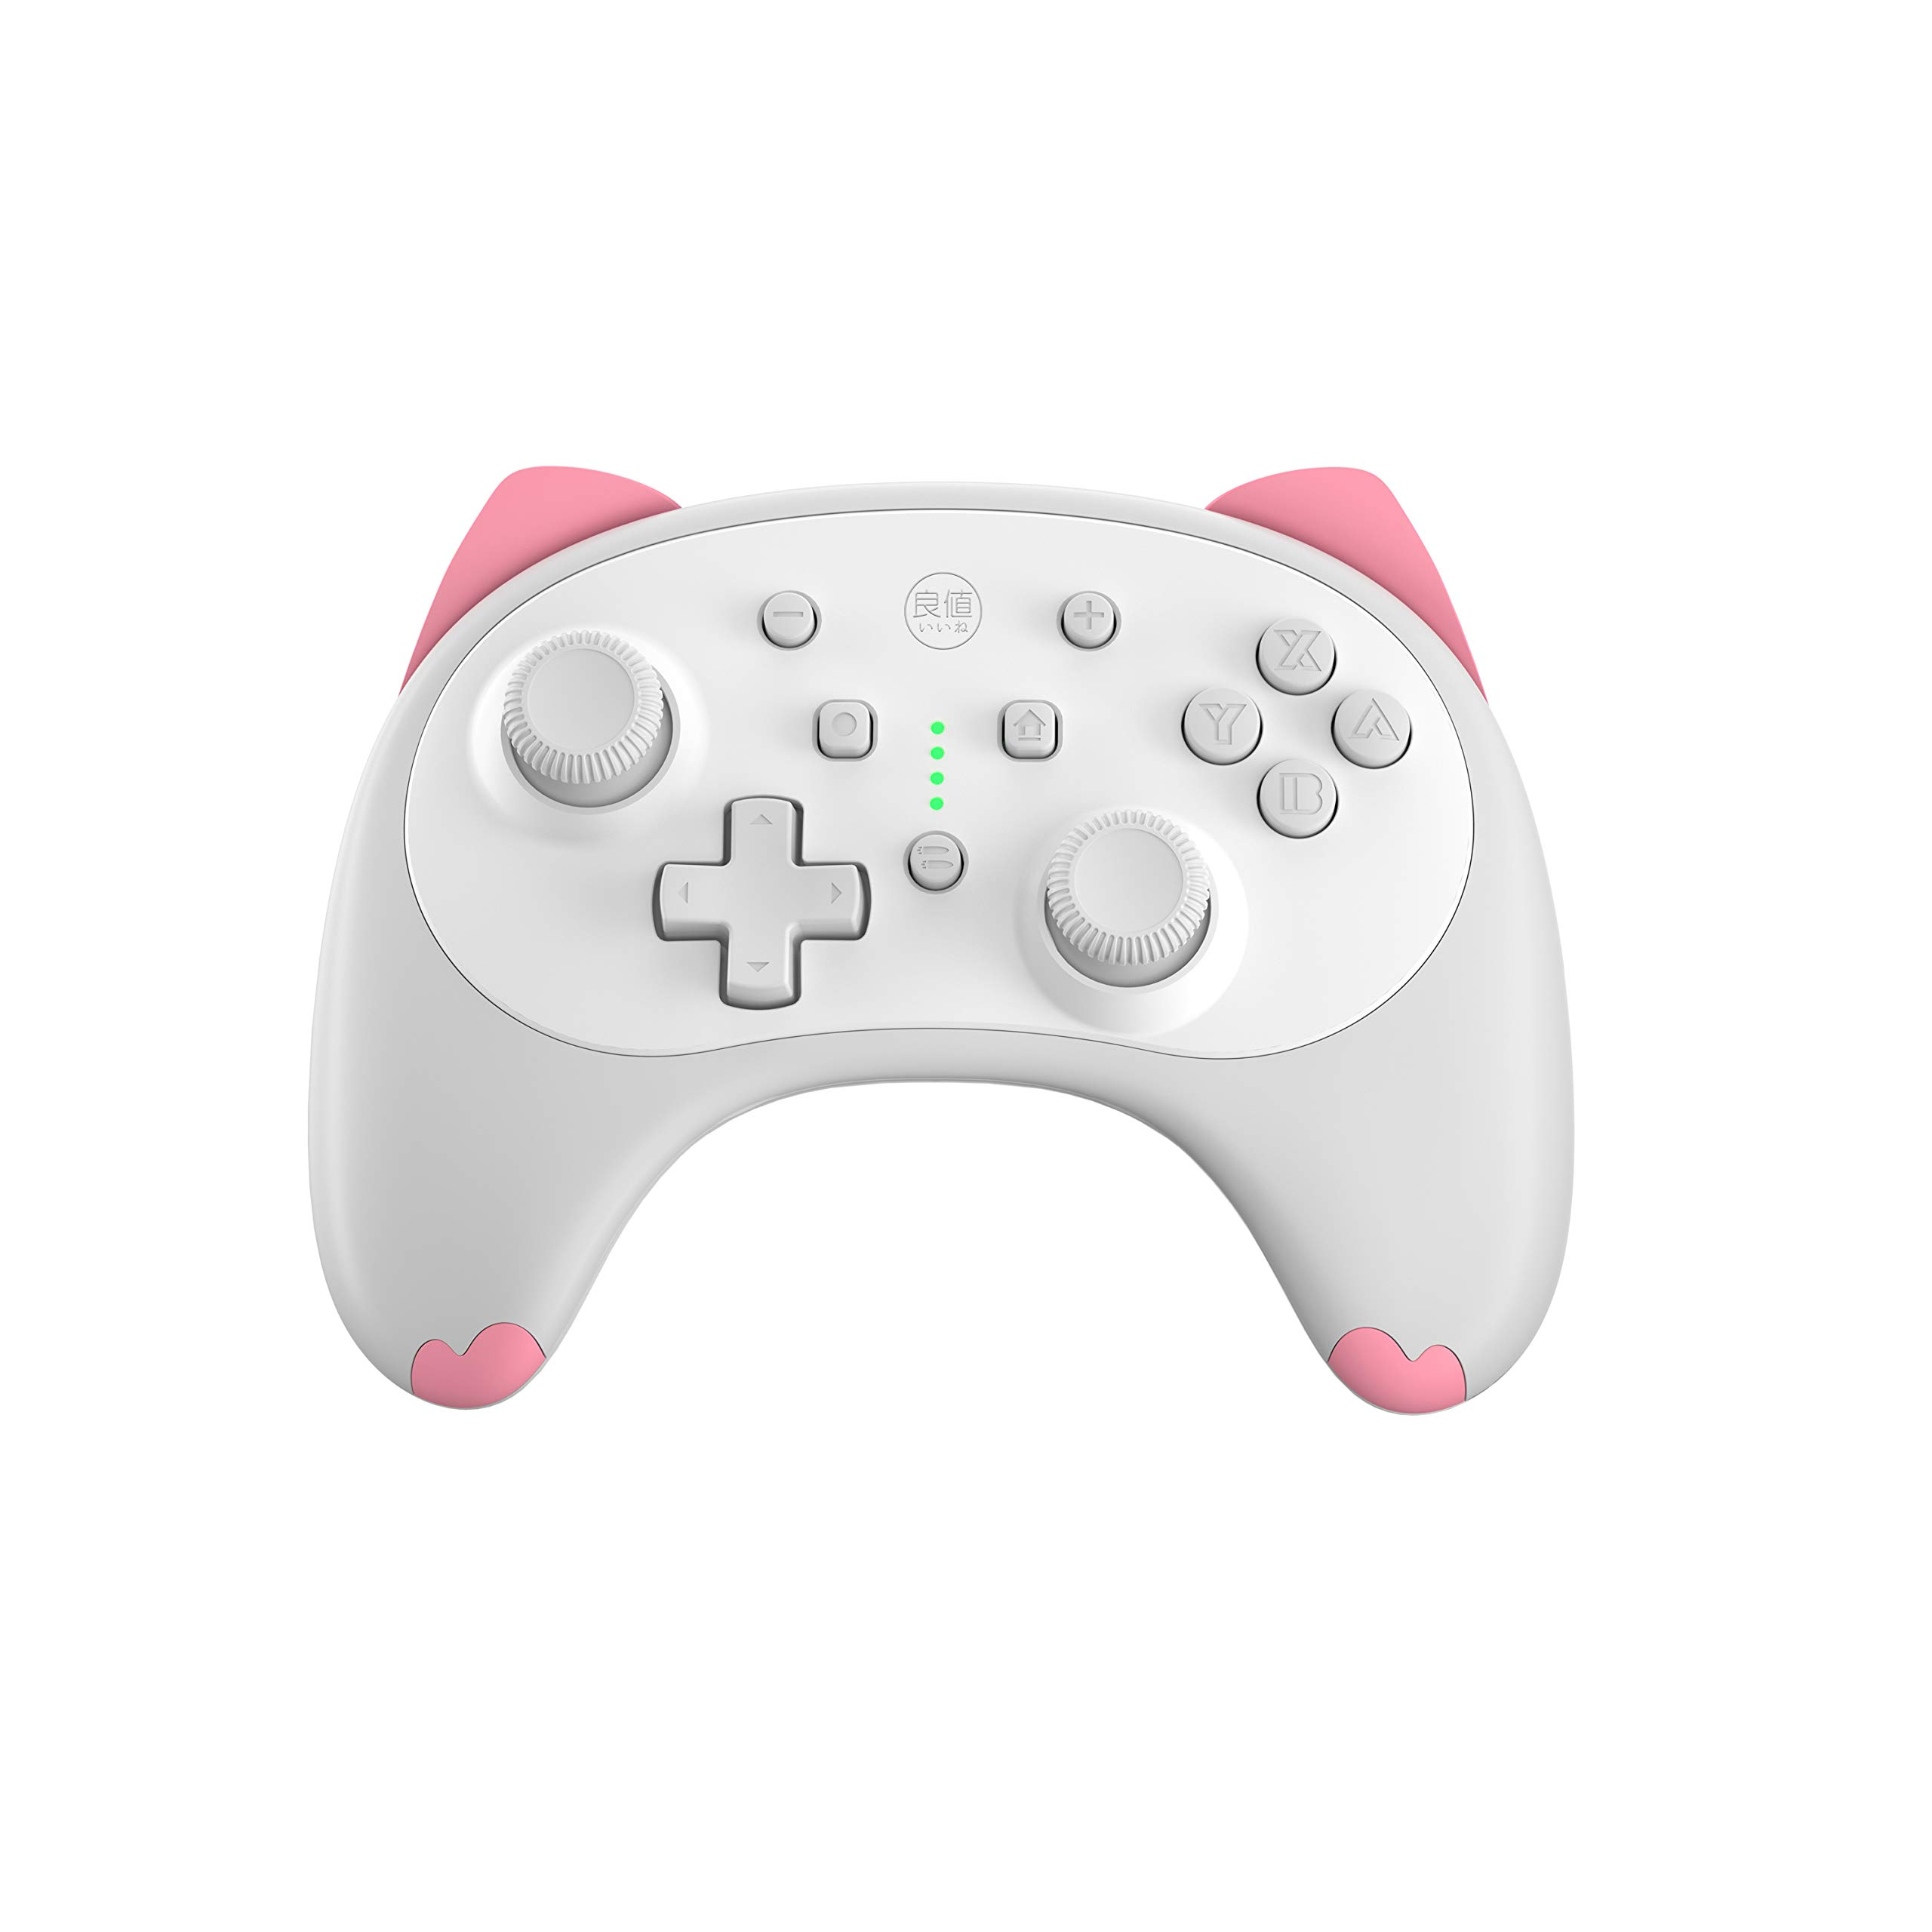 IINE Cartoon Kitten Wireless Controller for Nintendo Switch/Lite White,Small Size